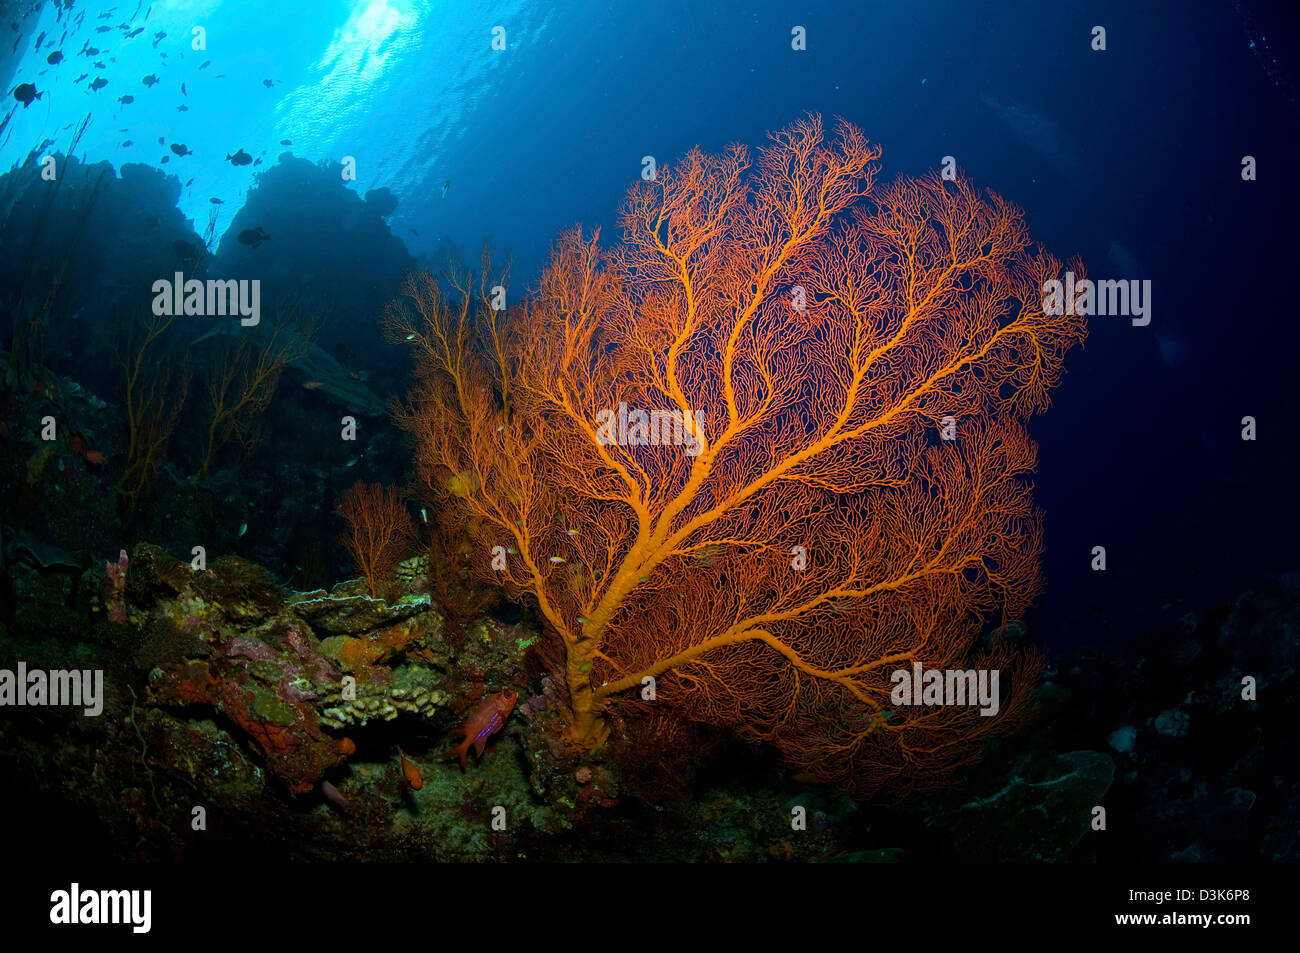 Colorful Sea Life Stockfotos & Colorful Sea Life Bilder - Alamy